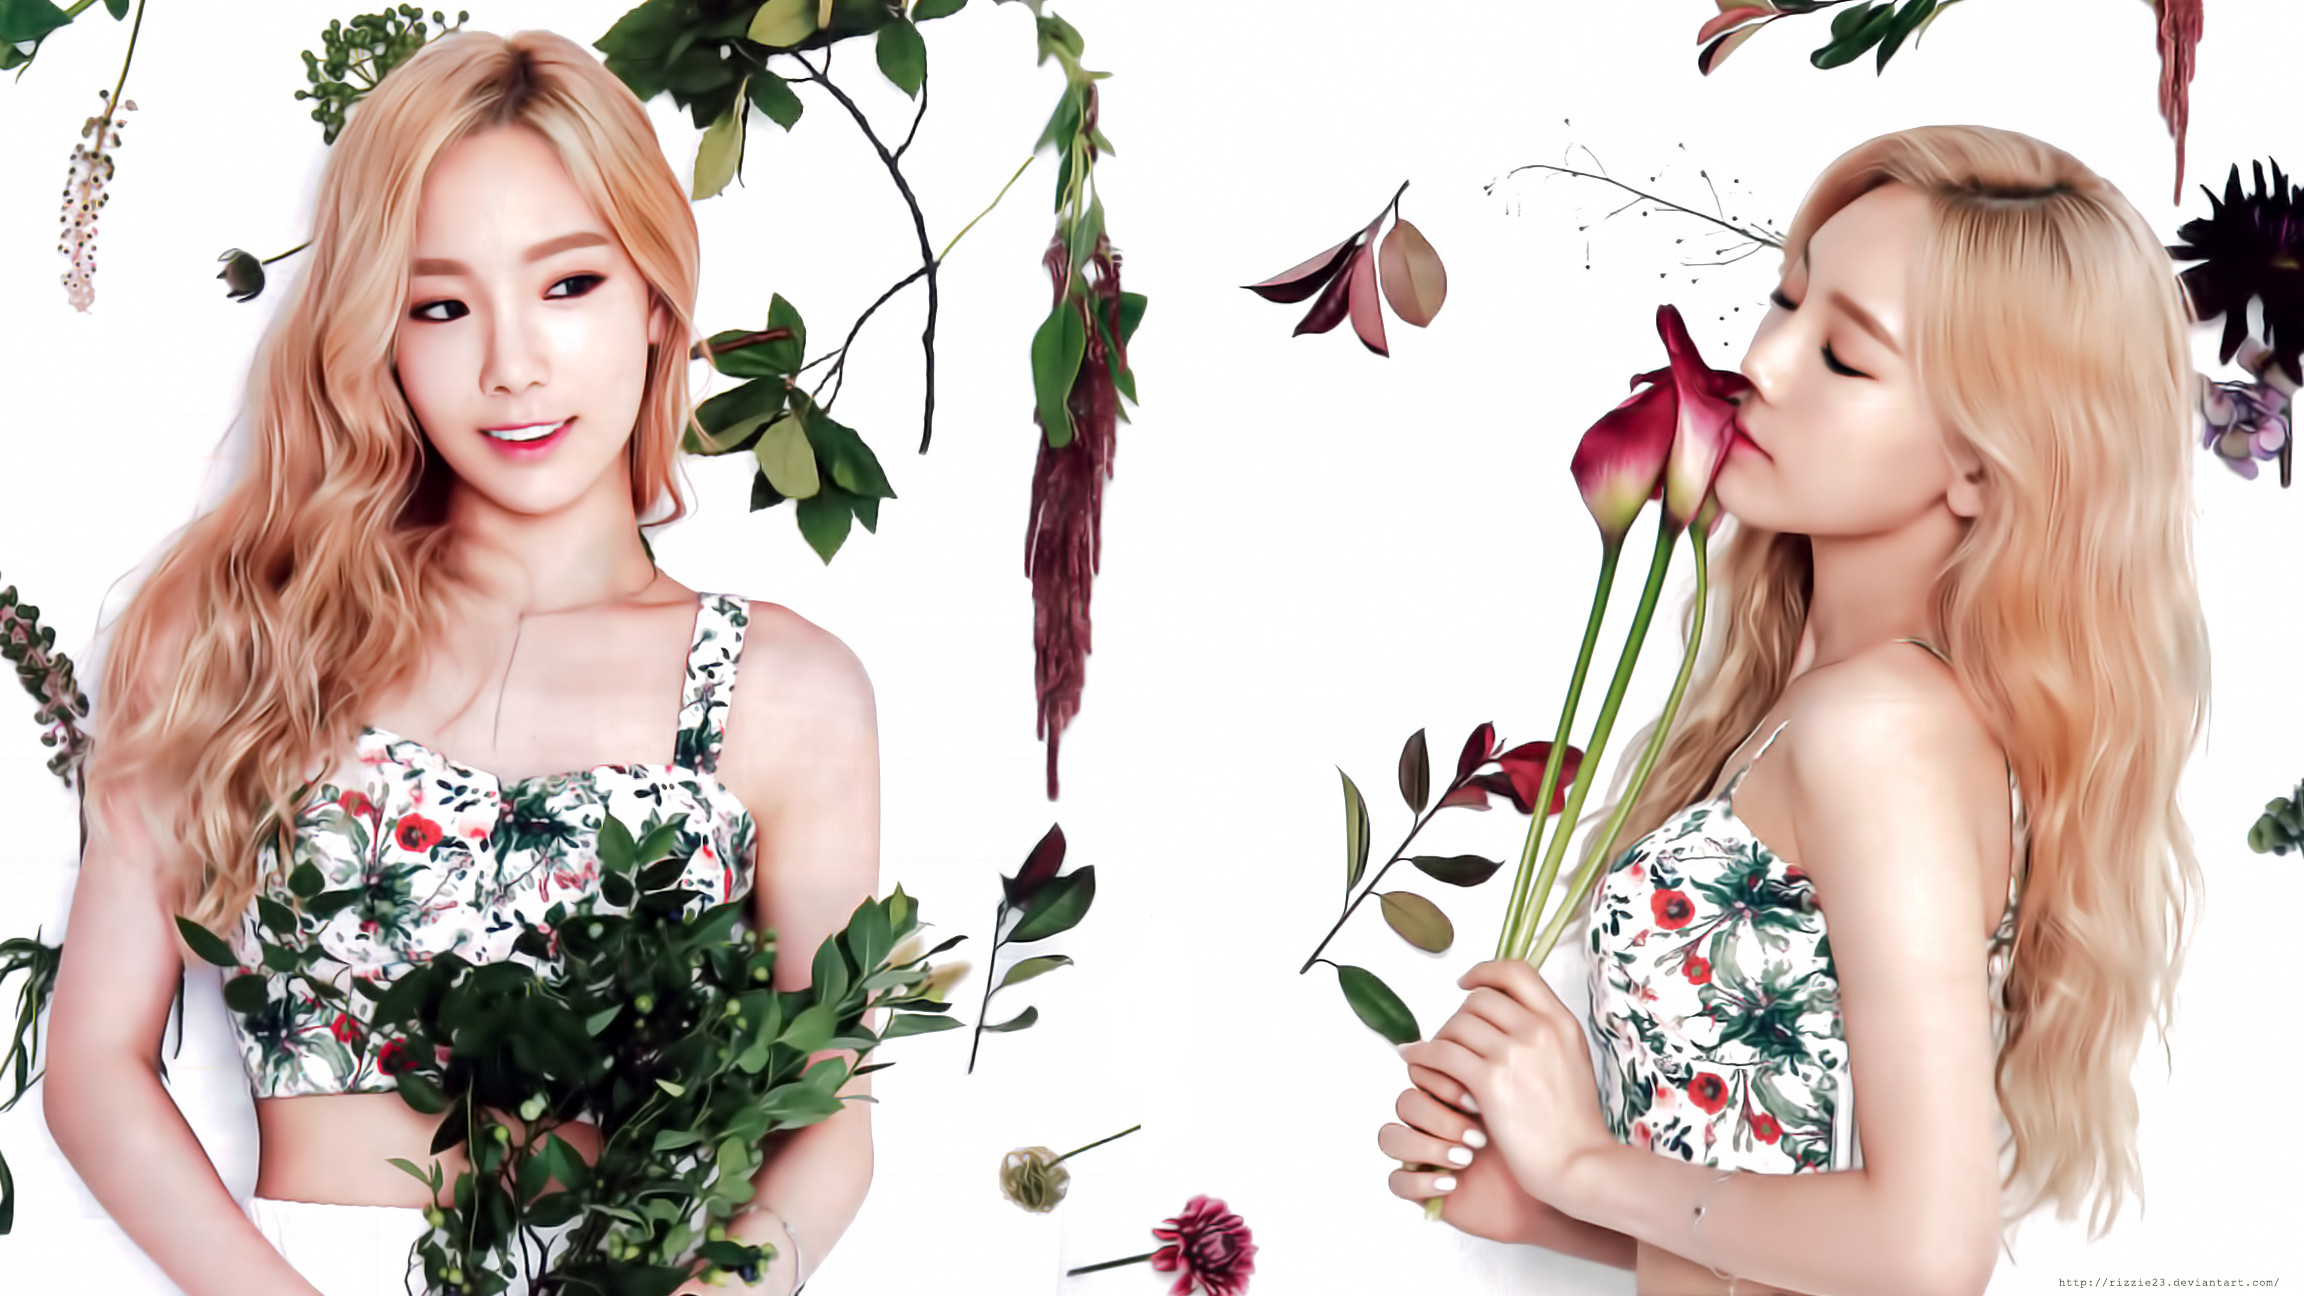 Res: 2304x1296, ... 2016 Season's Greetings Wallpaper (Taeyeon) by Rizzie23